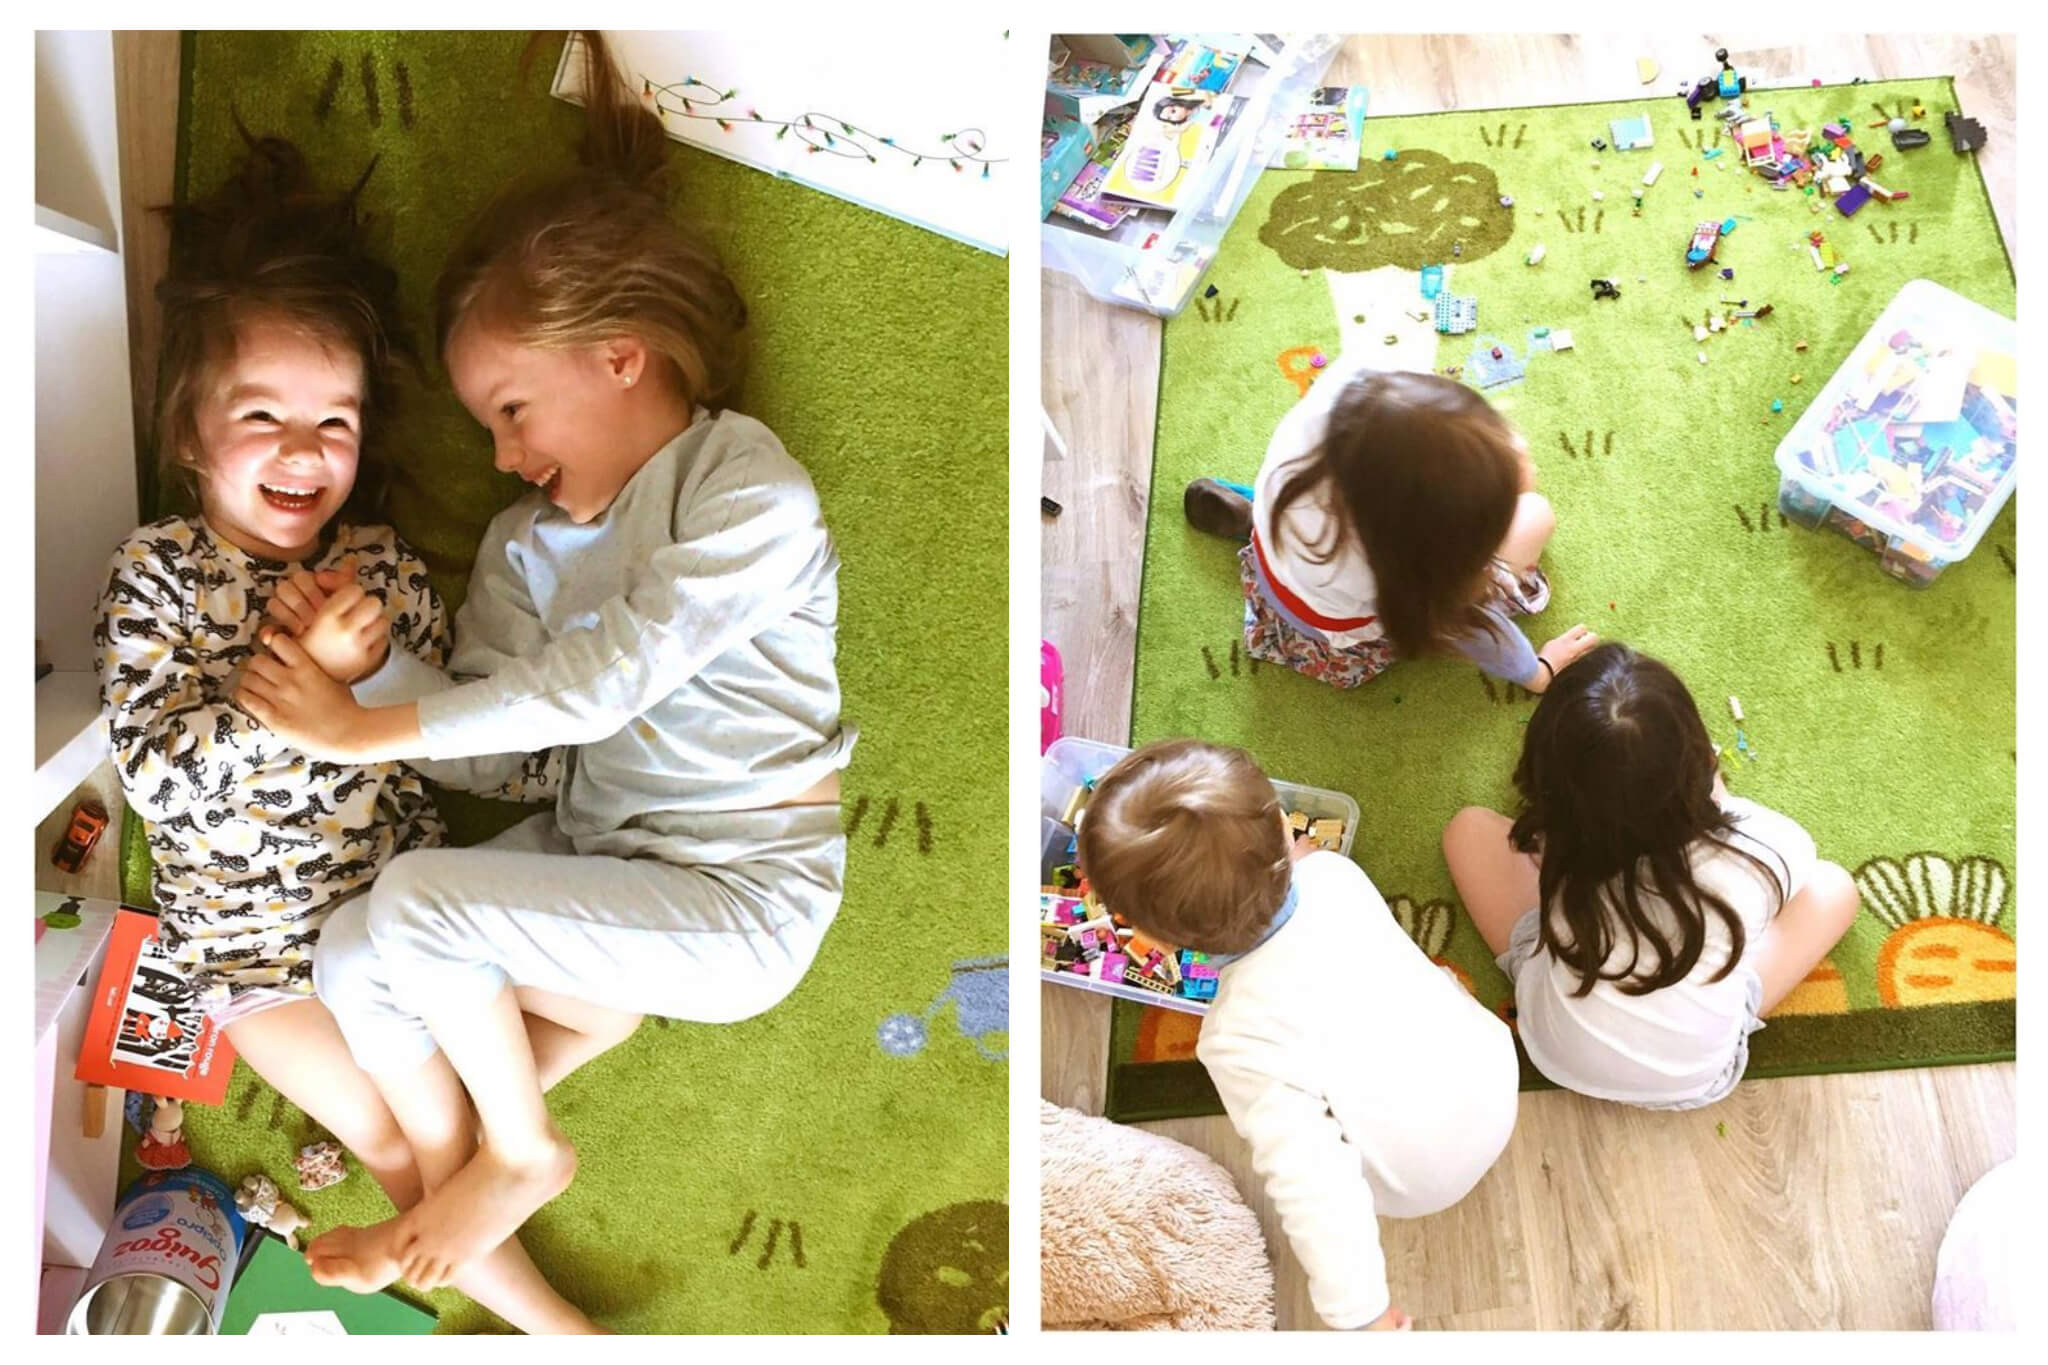 Left: Two children, one brunette and one blonde, smile while playing together atop a green carpet, Right: Three children play with legos atop a green carpet